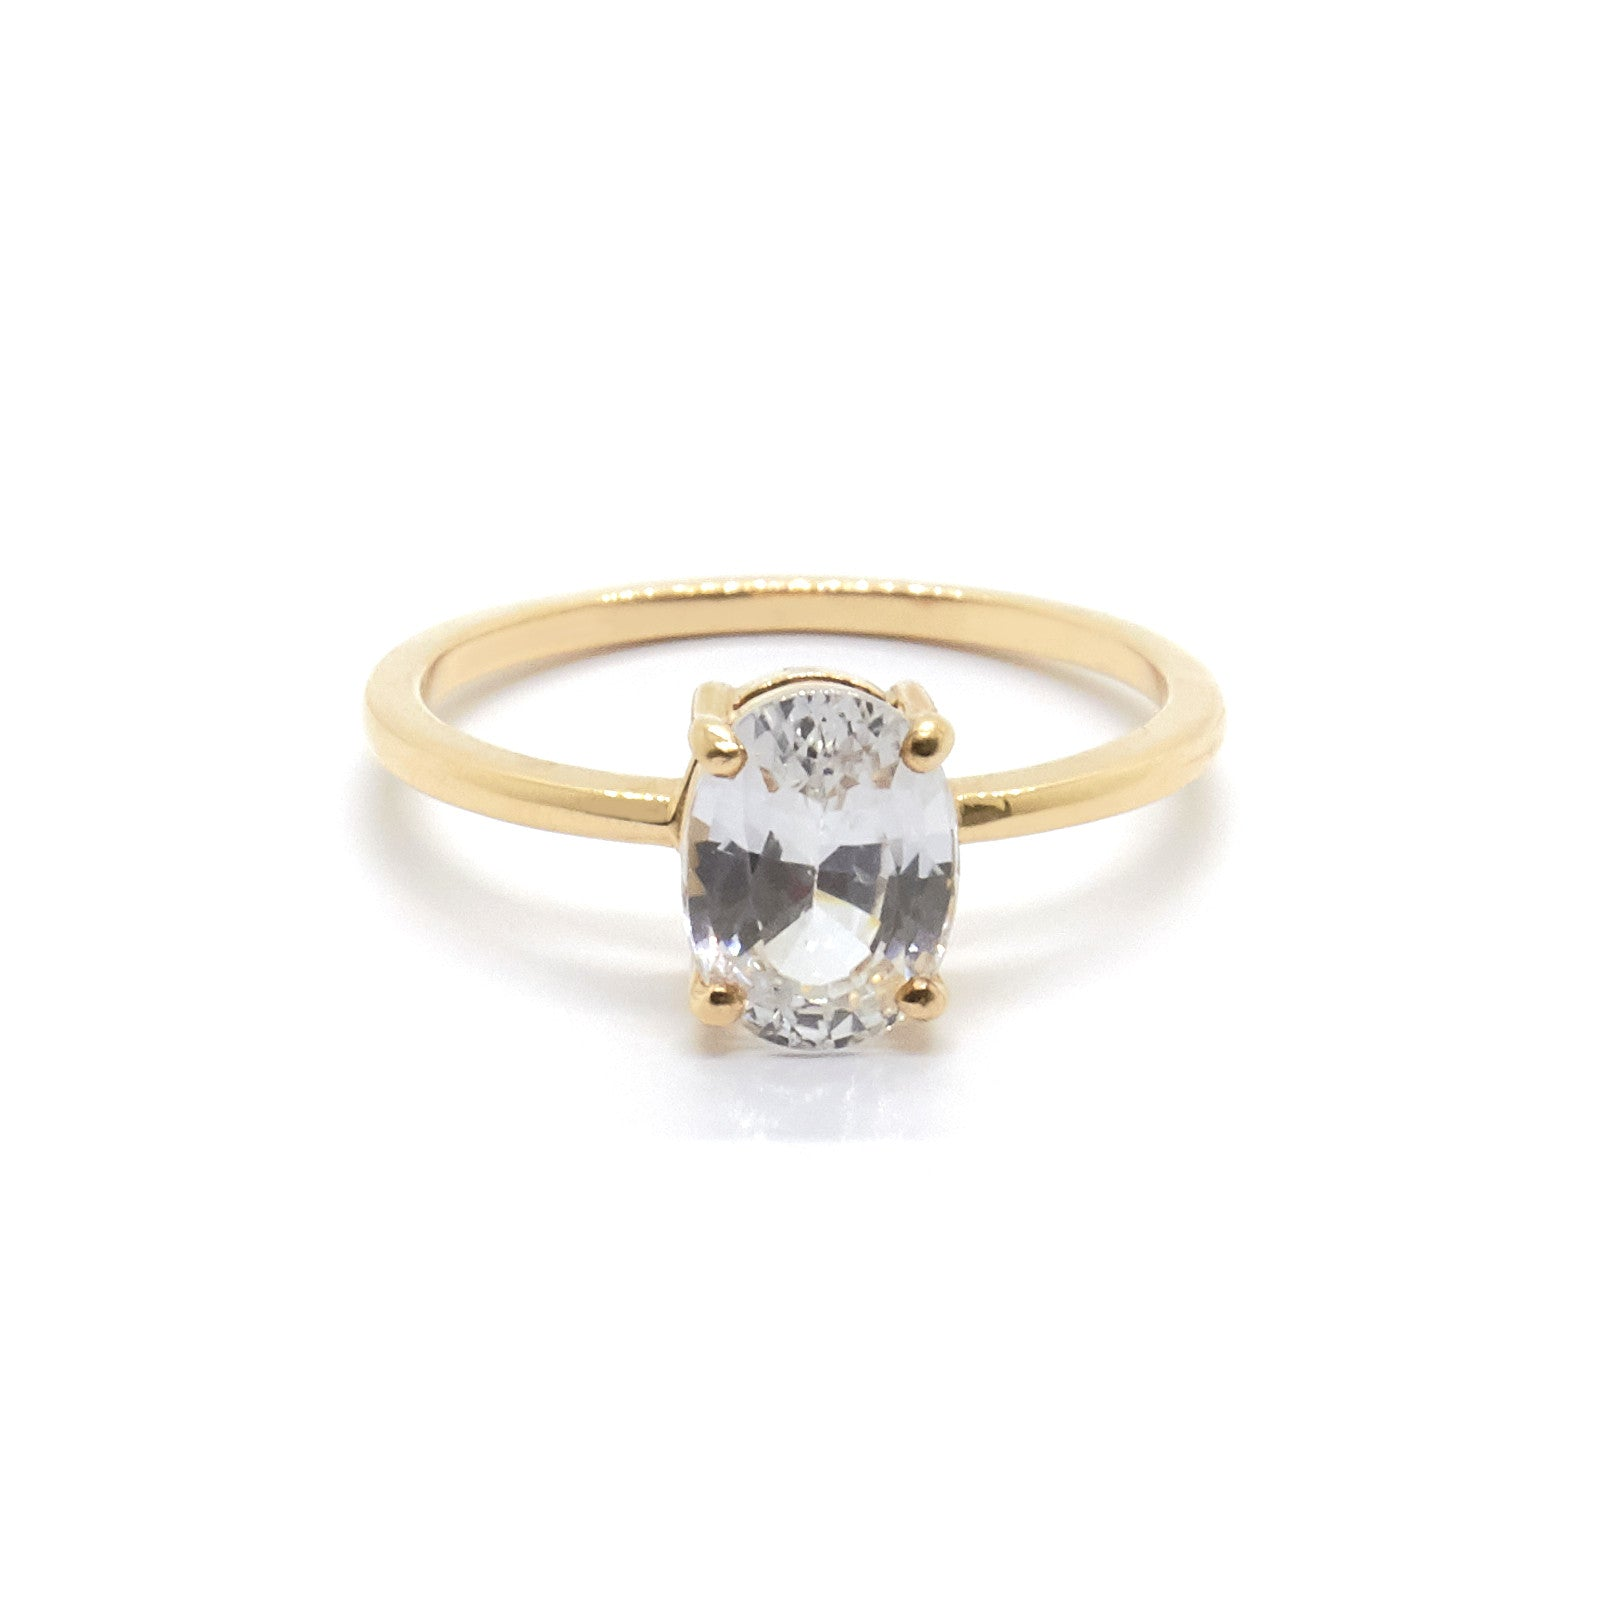 ring at wedding fabb diamond band solitaire rings on engagement sapphire bes